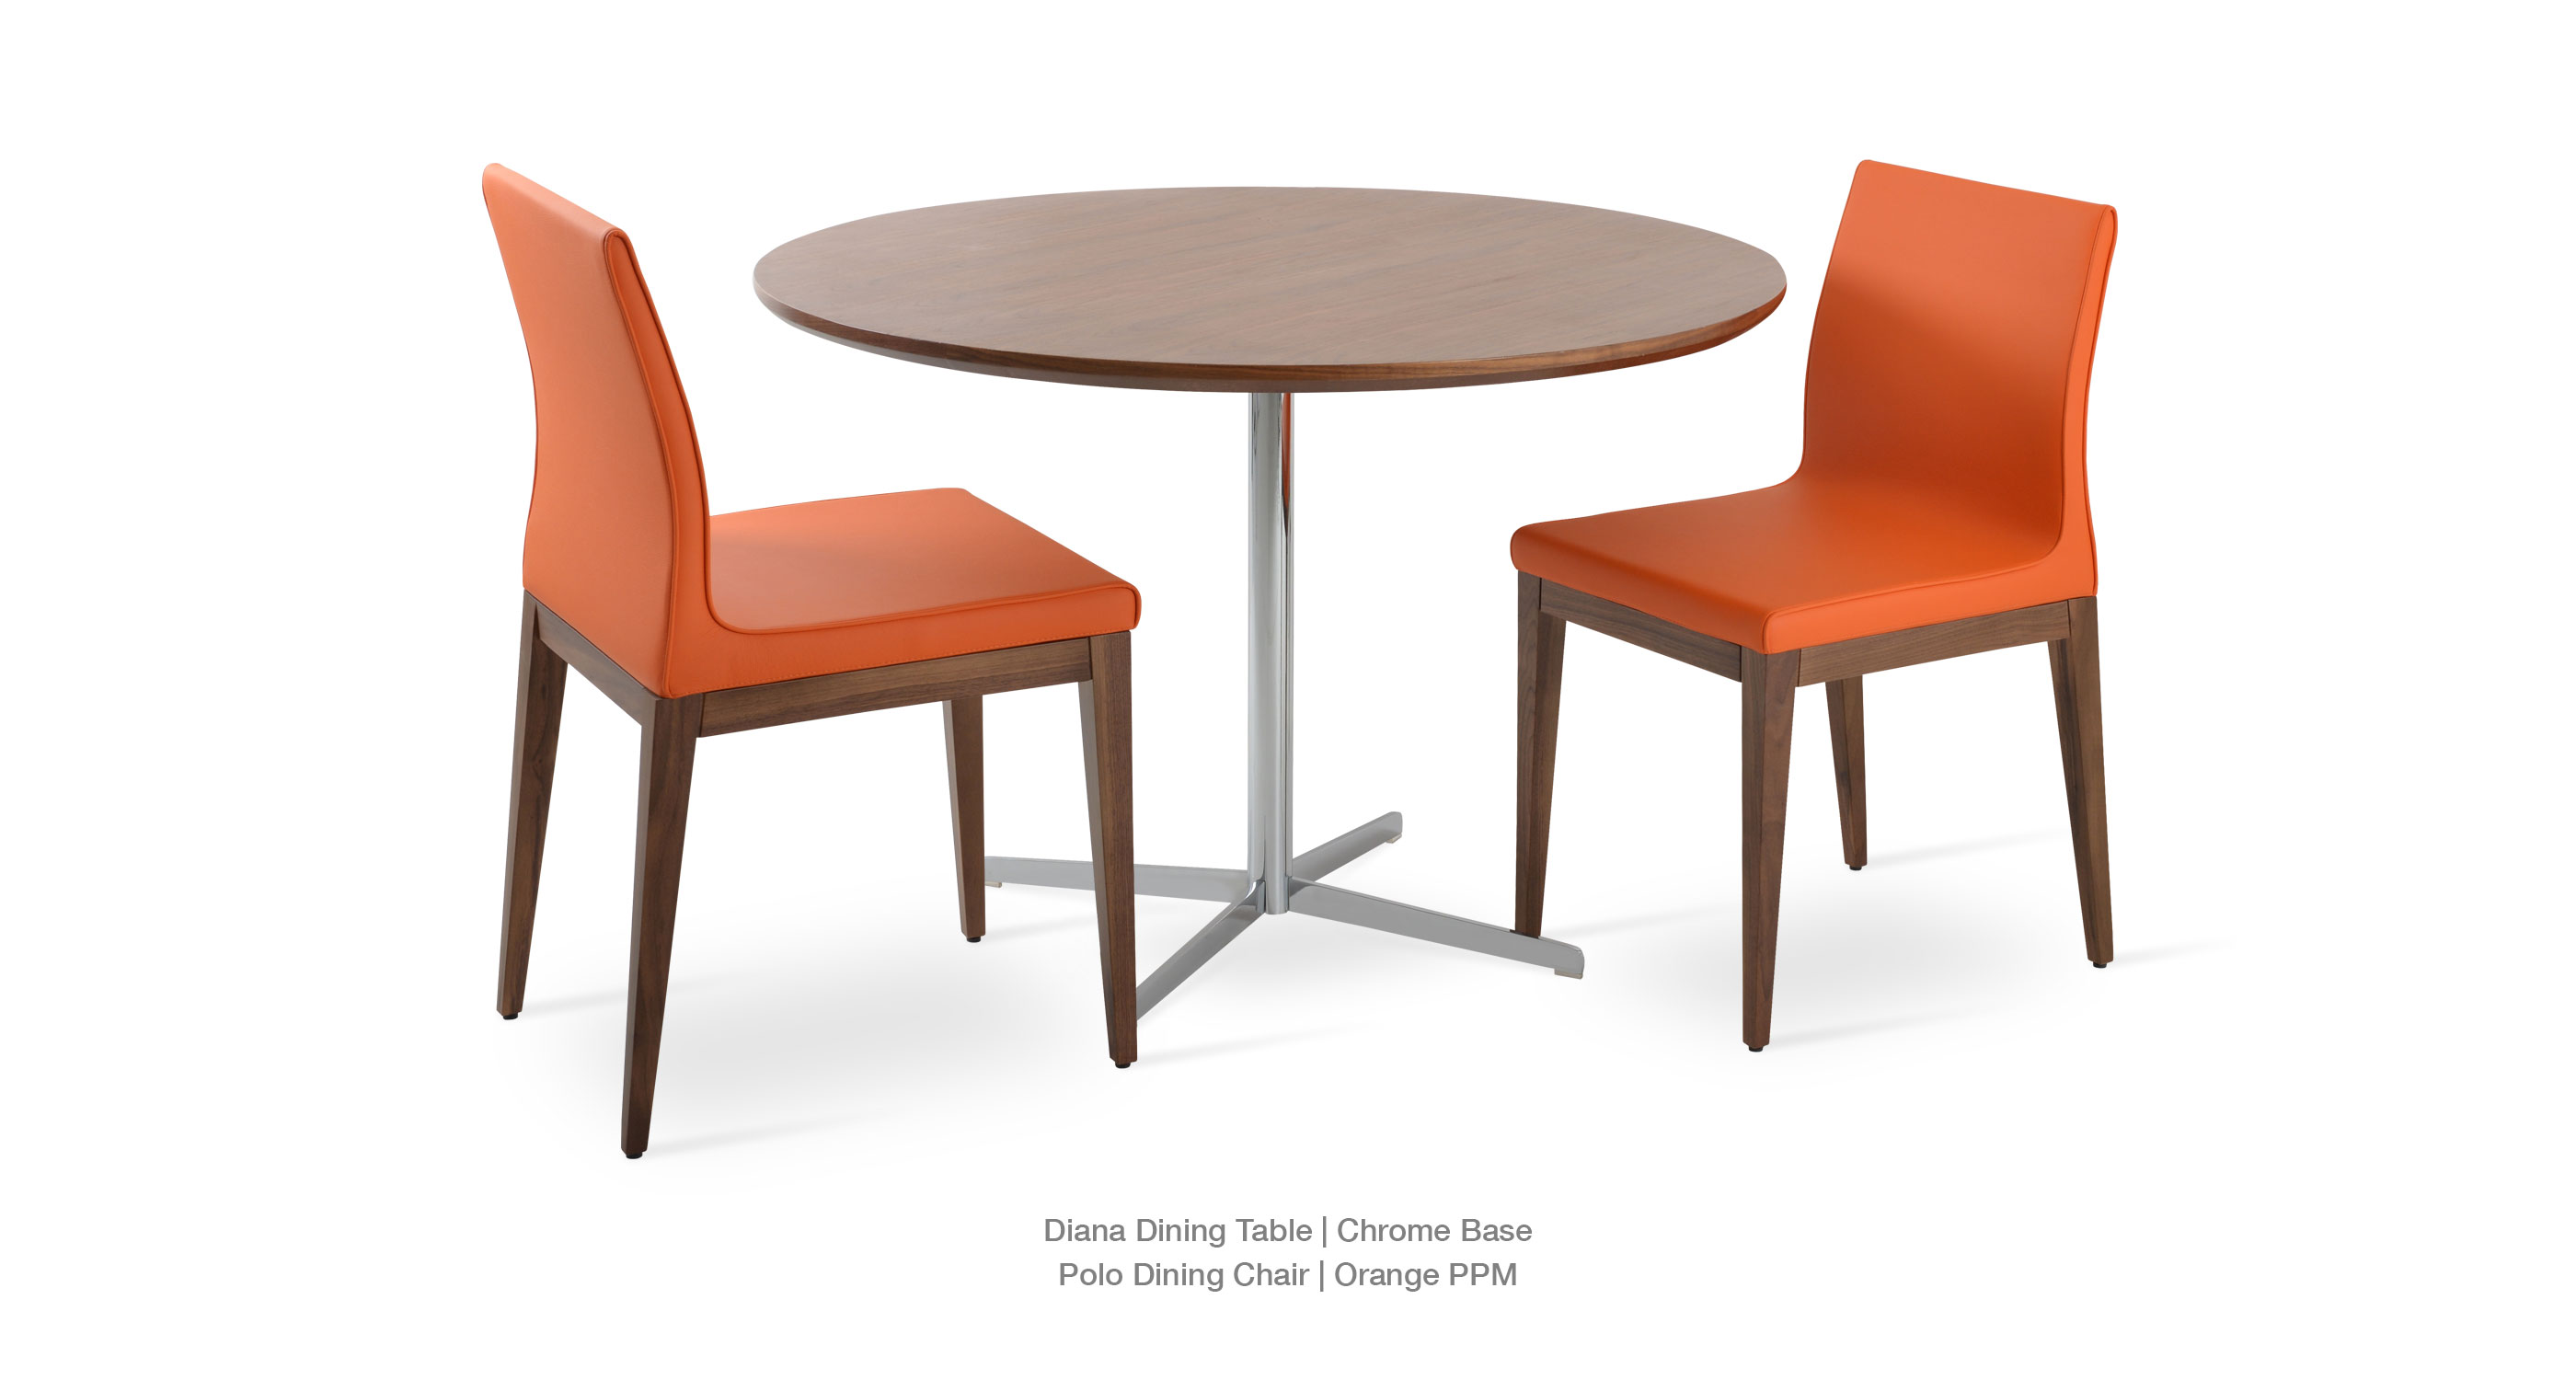 Polo Wood Orange - Diana Dining